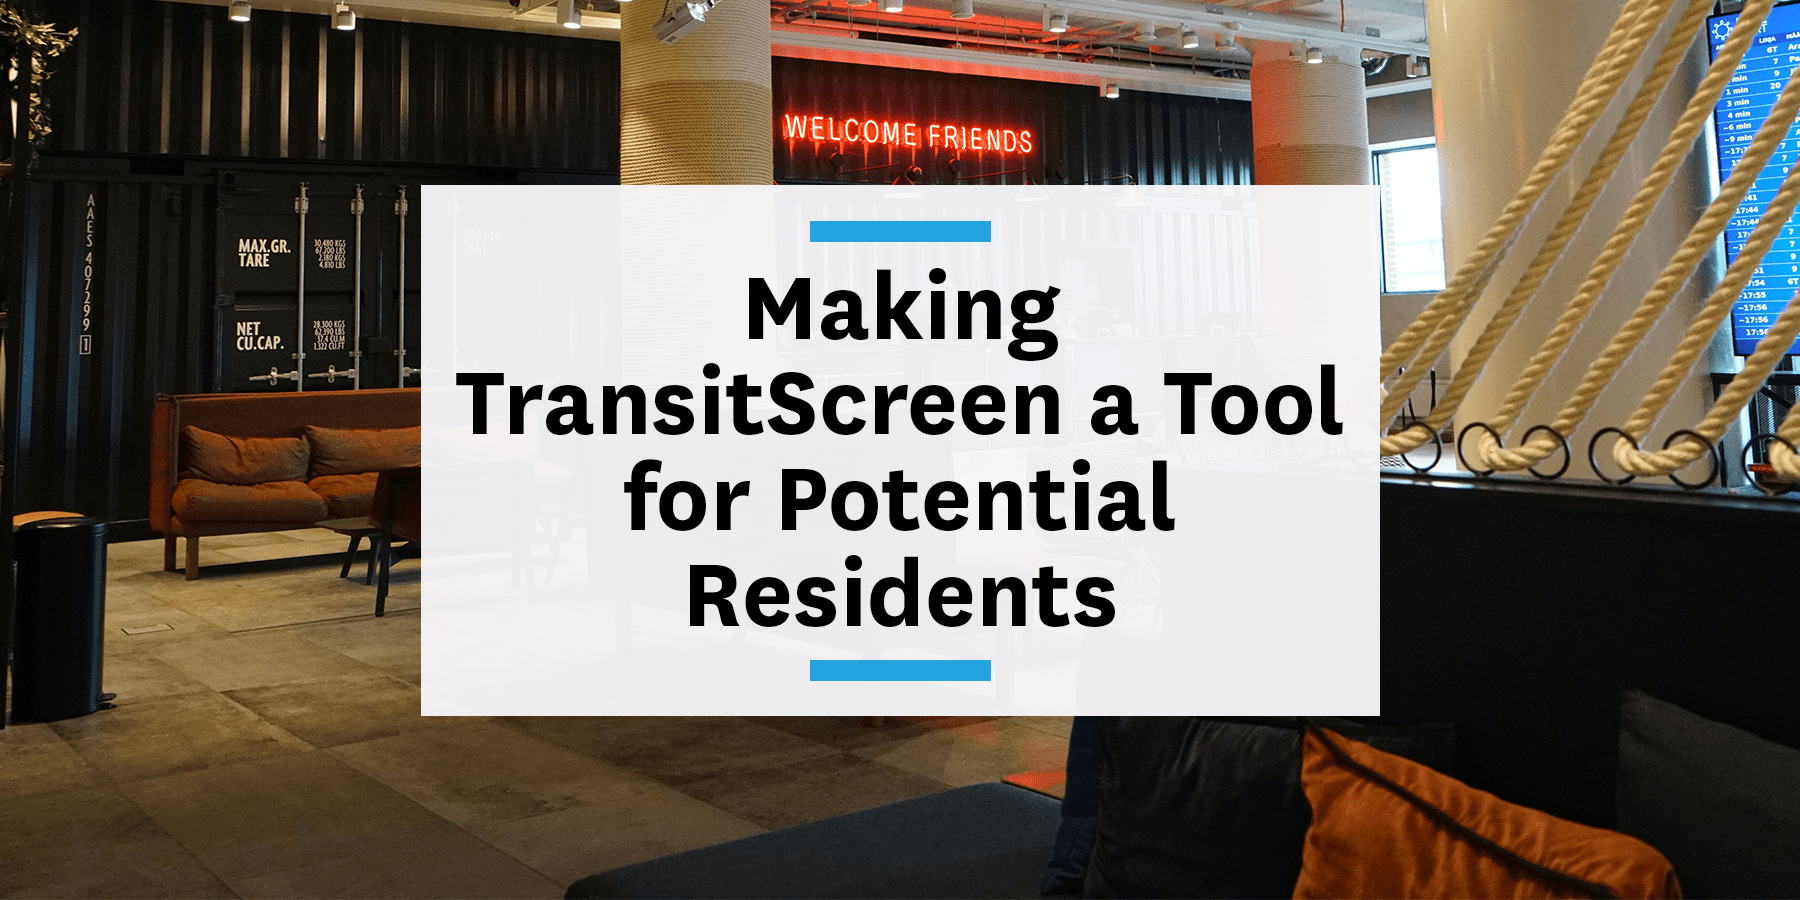 Feature image for making TransitScreen a tool for potential residents